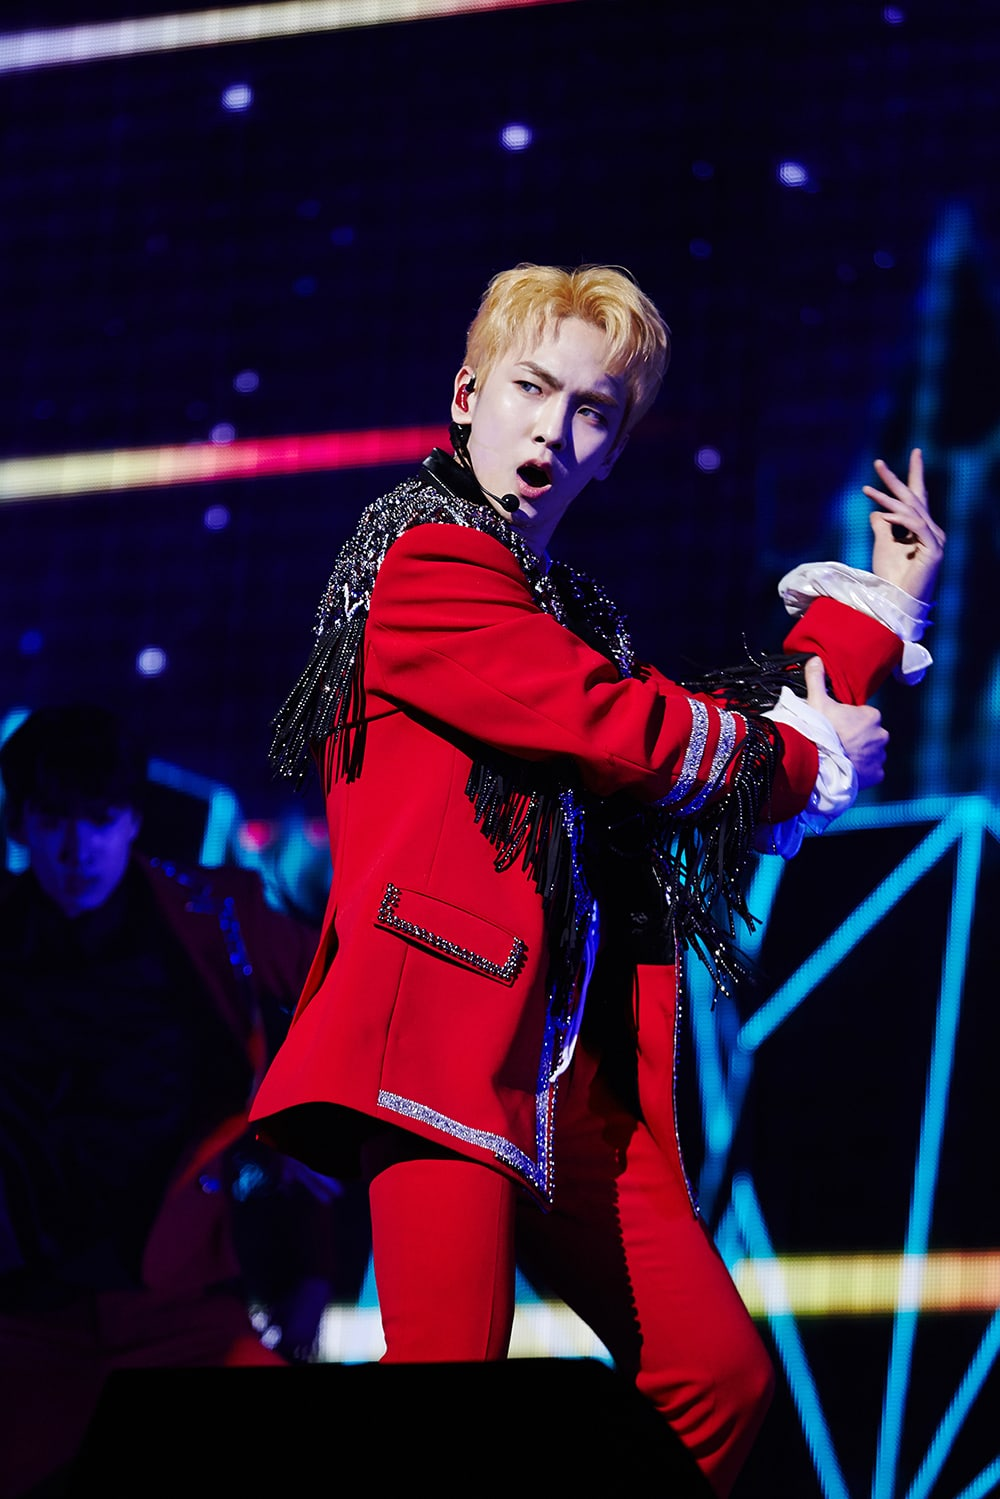 SHINee's Key Announces Release Of Repackaged Album And SM Station